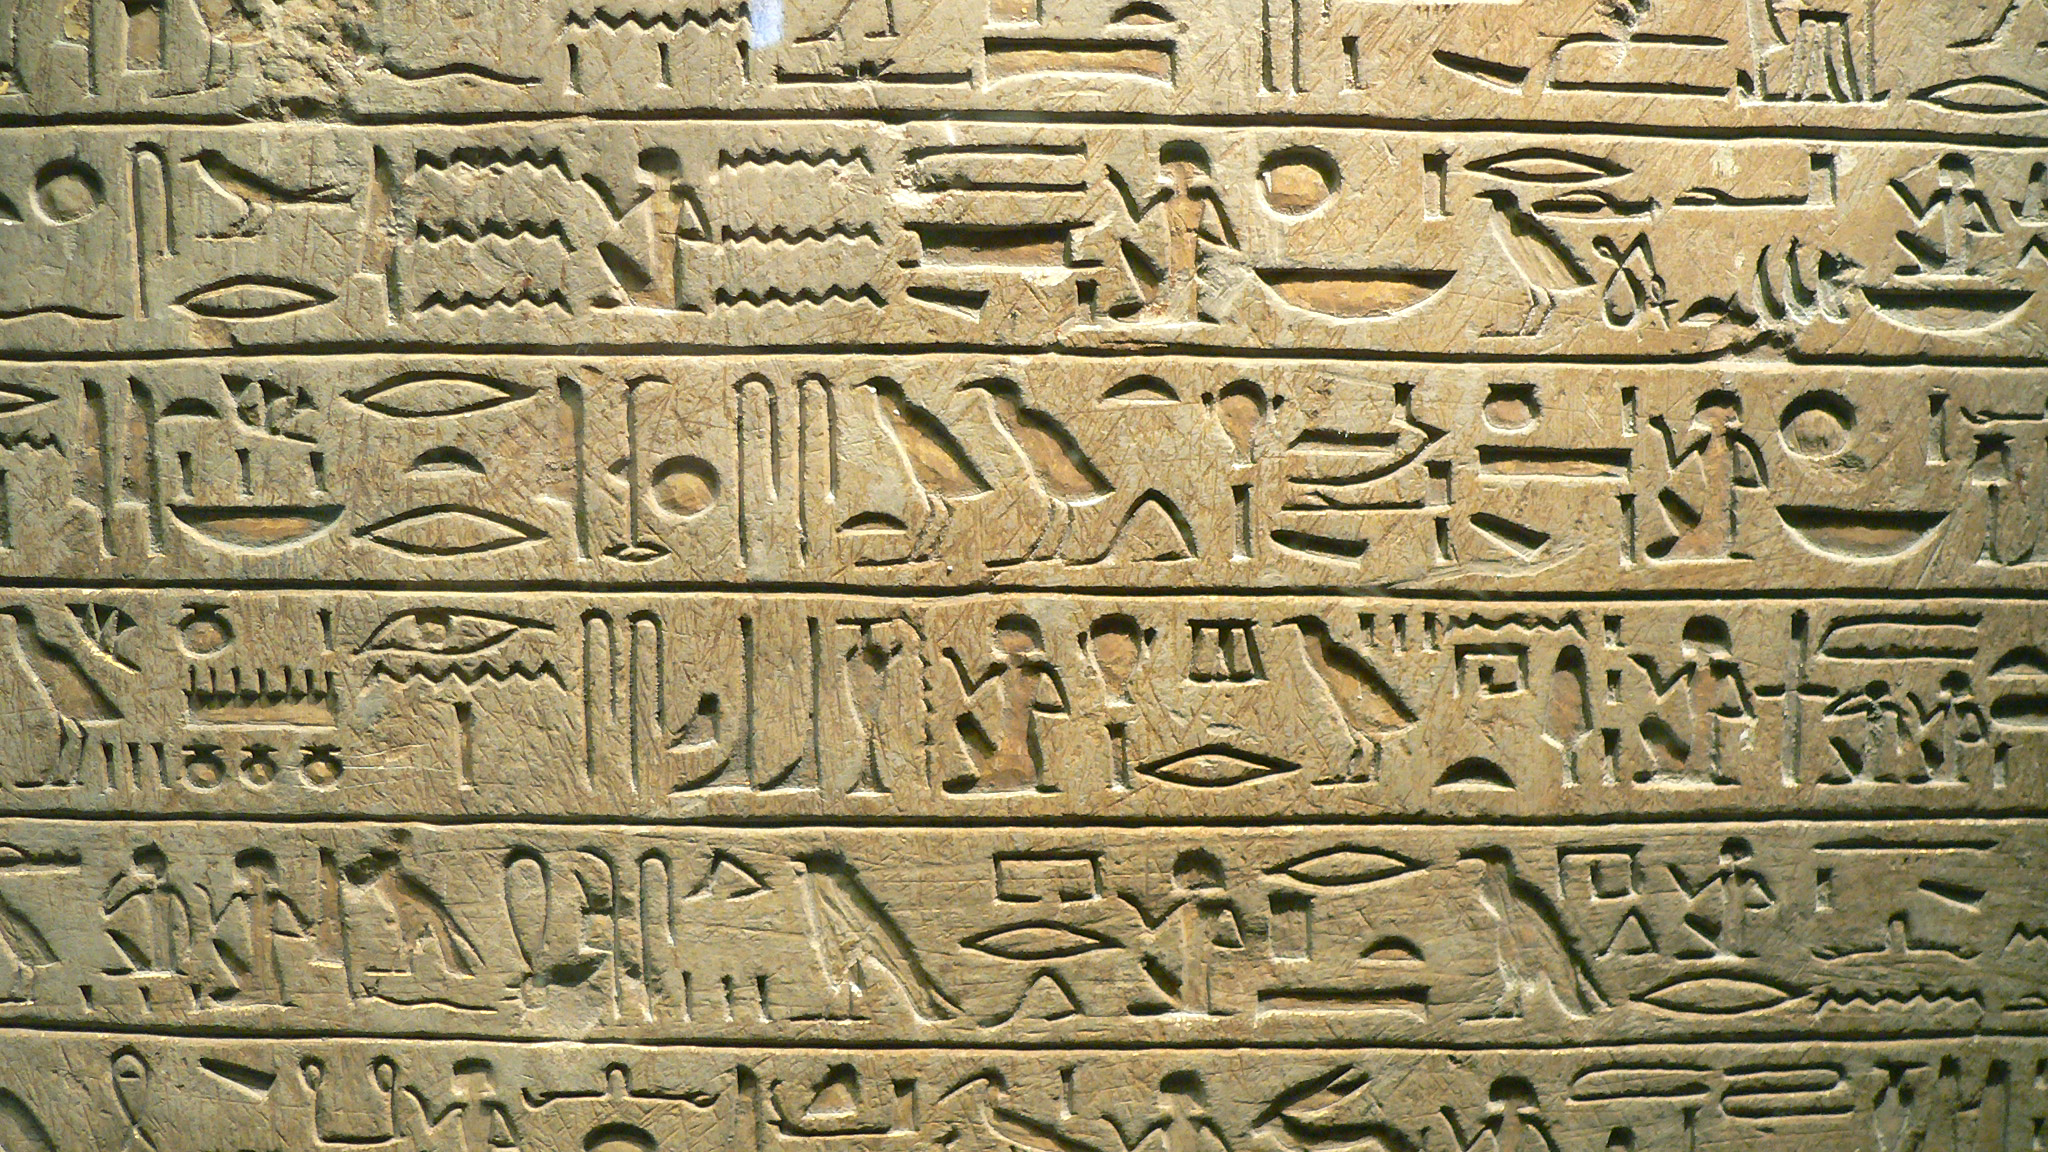 For the First Time, You'll Be Able to Read Ancient Egyptian Literature in English